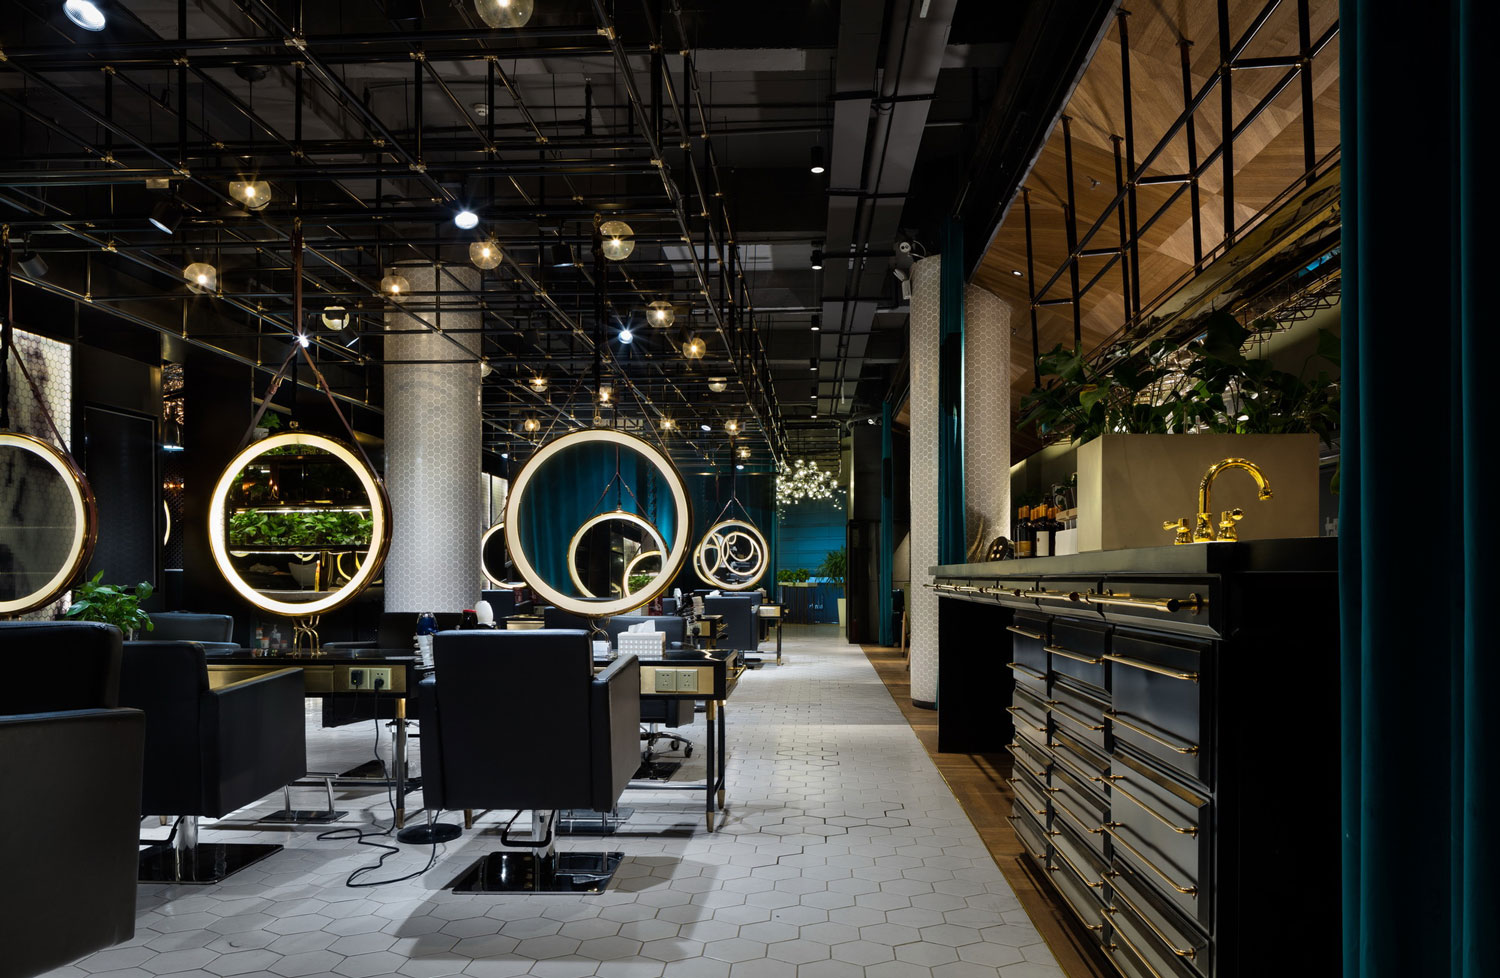 Barber Shop in Wuxi, China by S5 Design | Yellowtrace